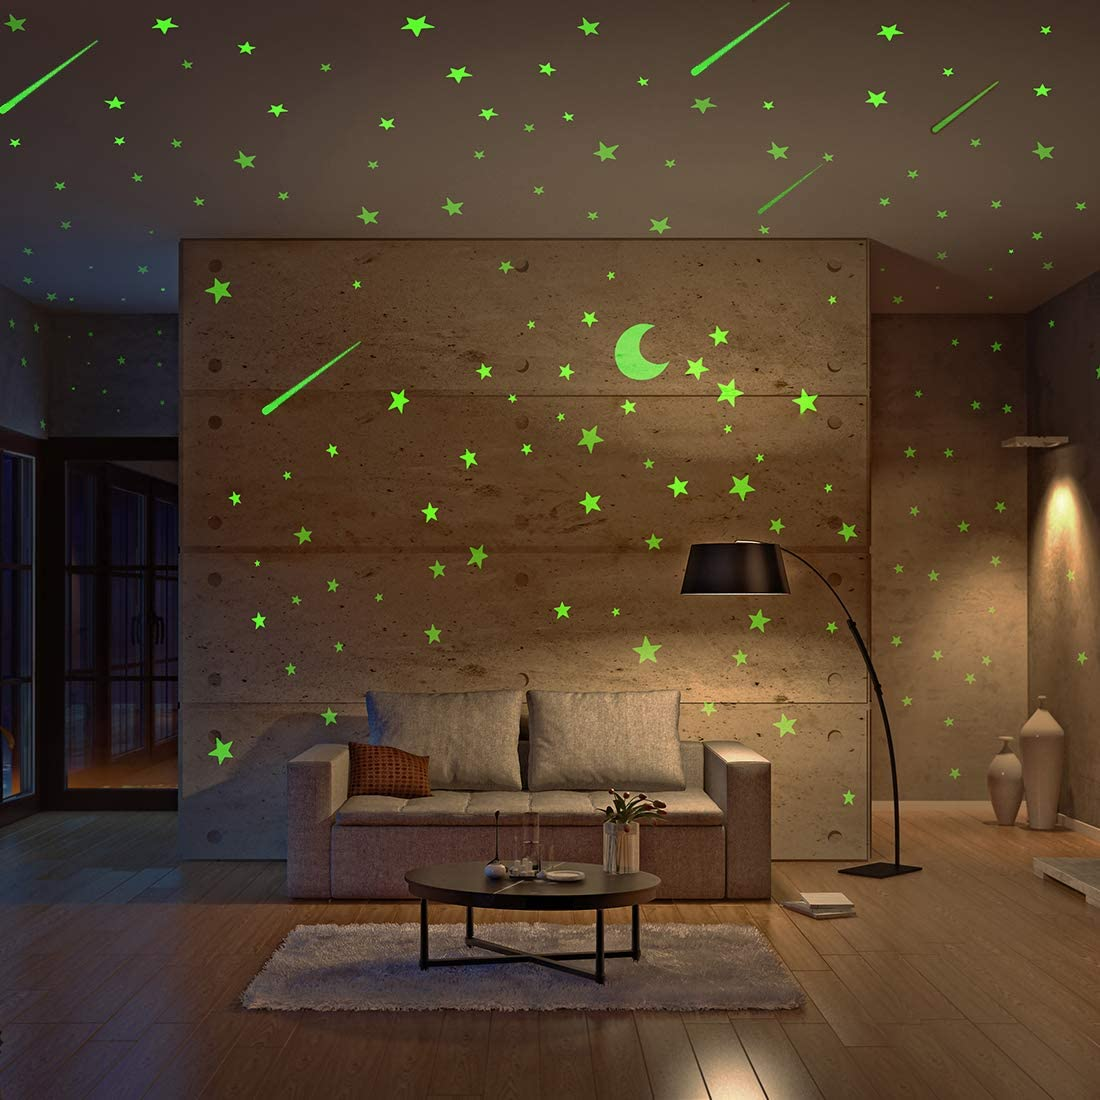 Amazon Com Realistic Glow In The Dark Stars And Moon 500pcs Glow Stars And Shooting Star Adhesive Glow Stars For Kids Bedroom Luminous Stars Stickers Create A Realistic Starry Sky Room Decor Wall Stickers Kitchen